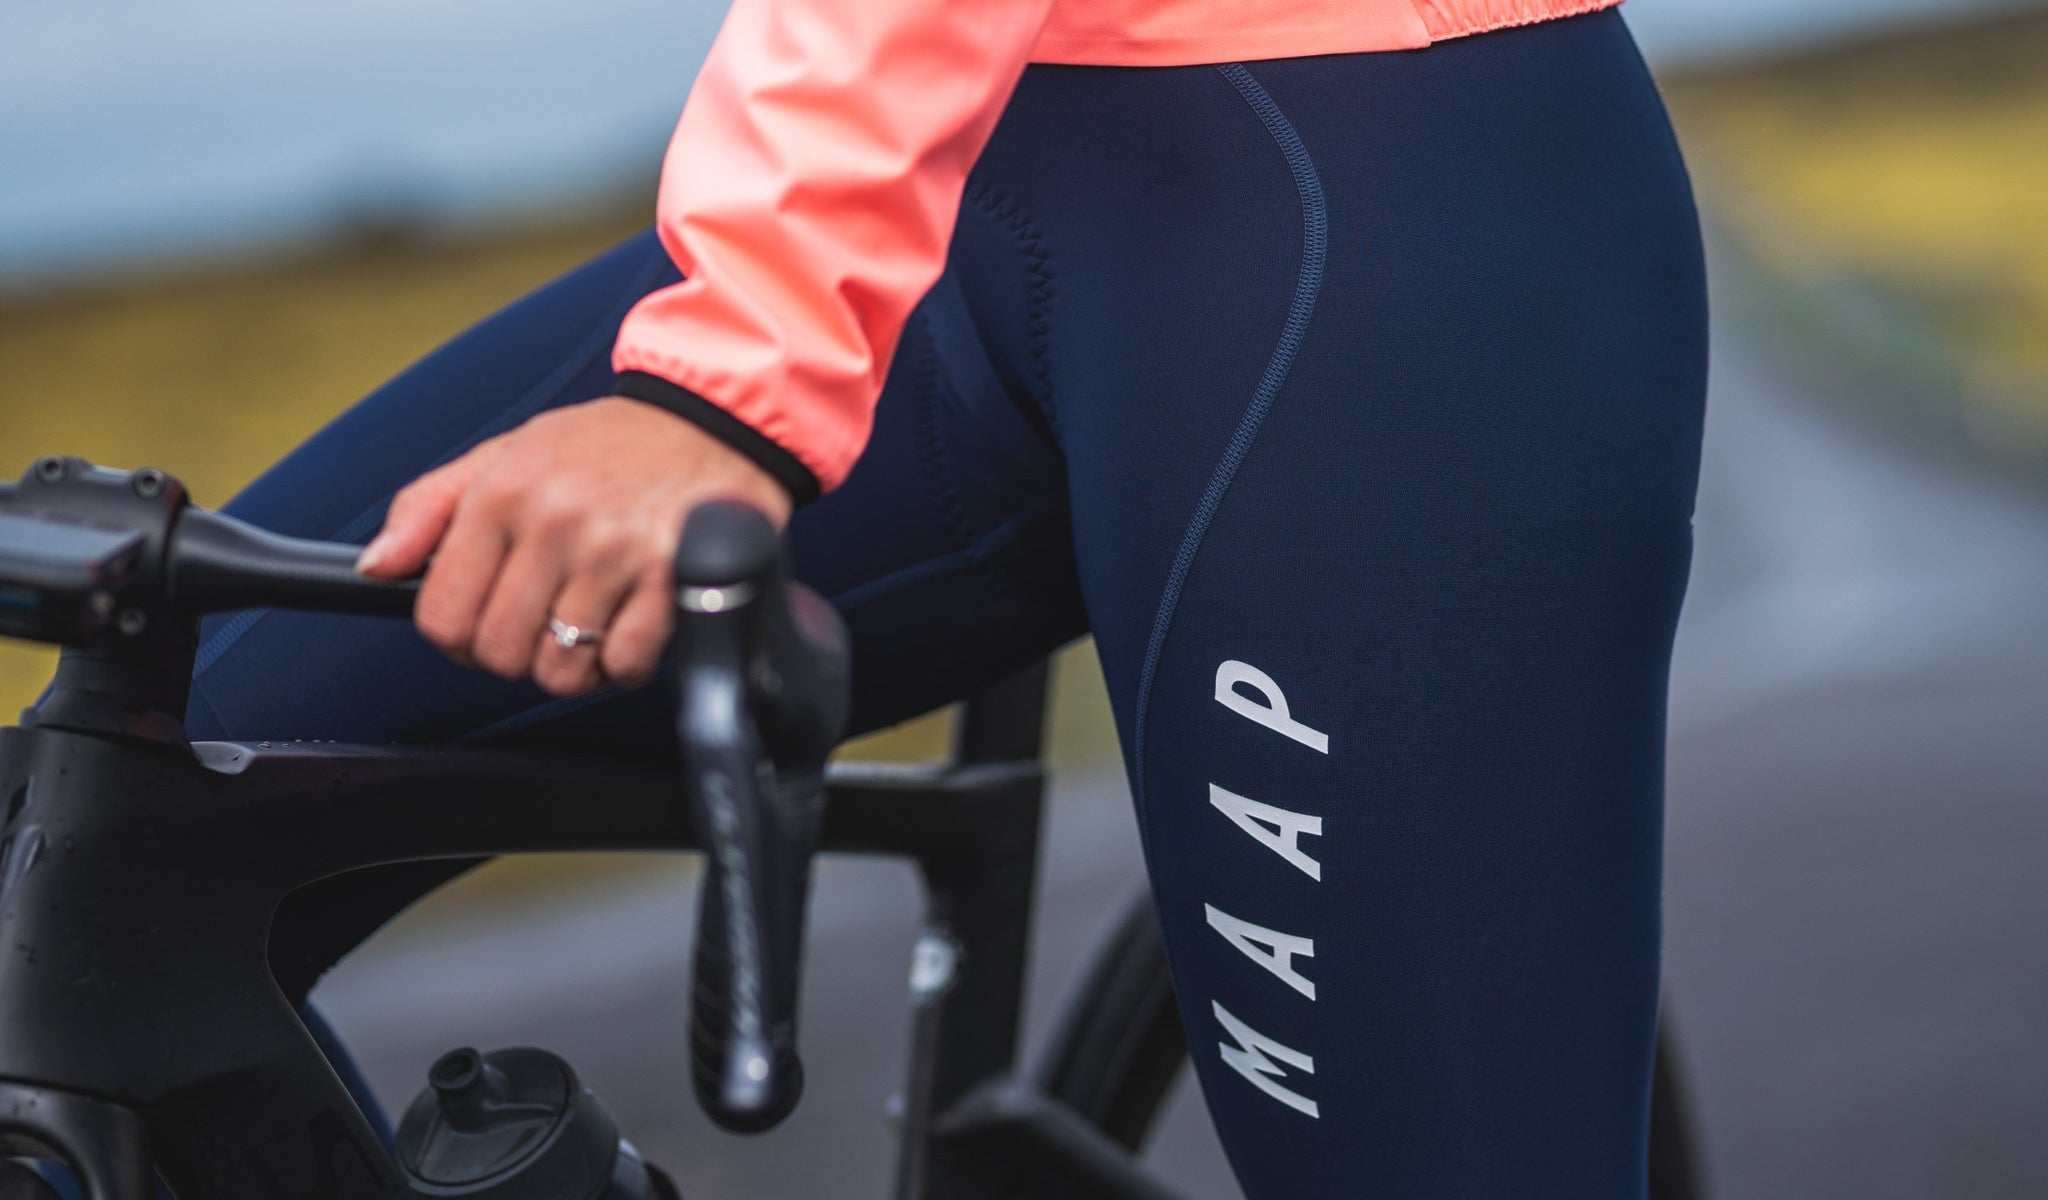 MAAP Women's Team Thermal Cycling Bib Tights in Navy for riding in cold weather conditions.